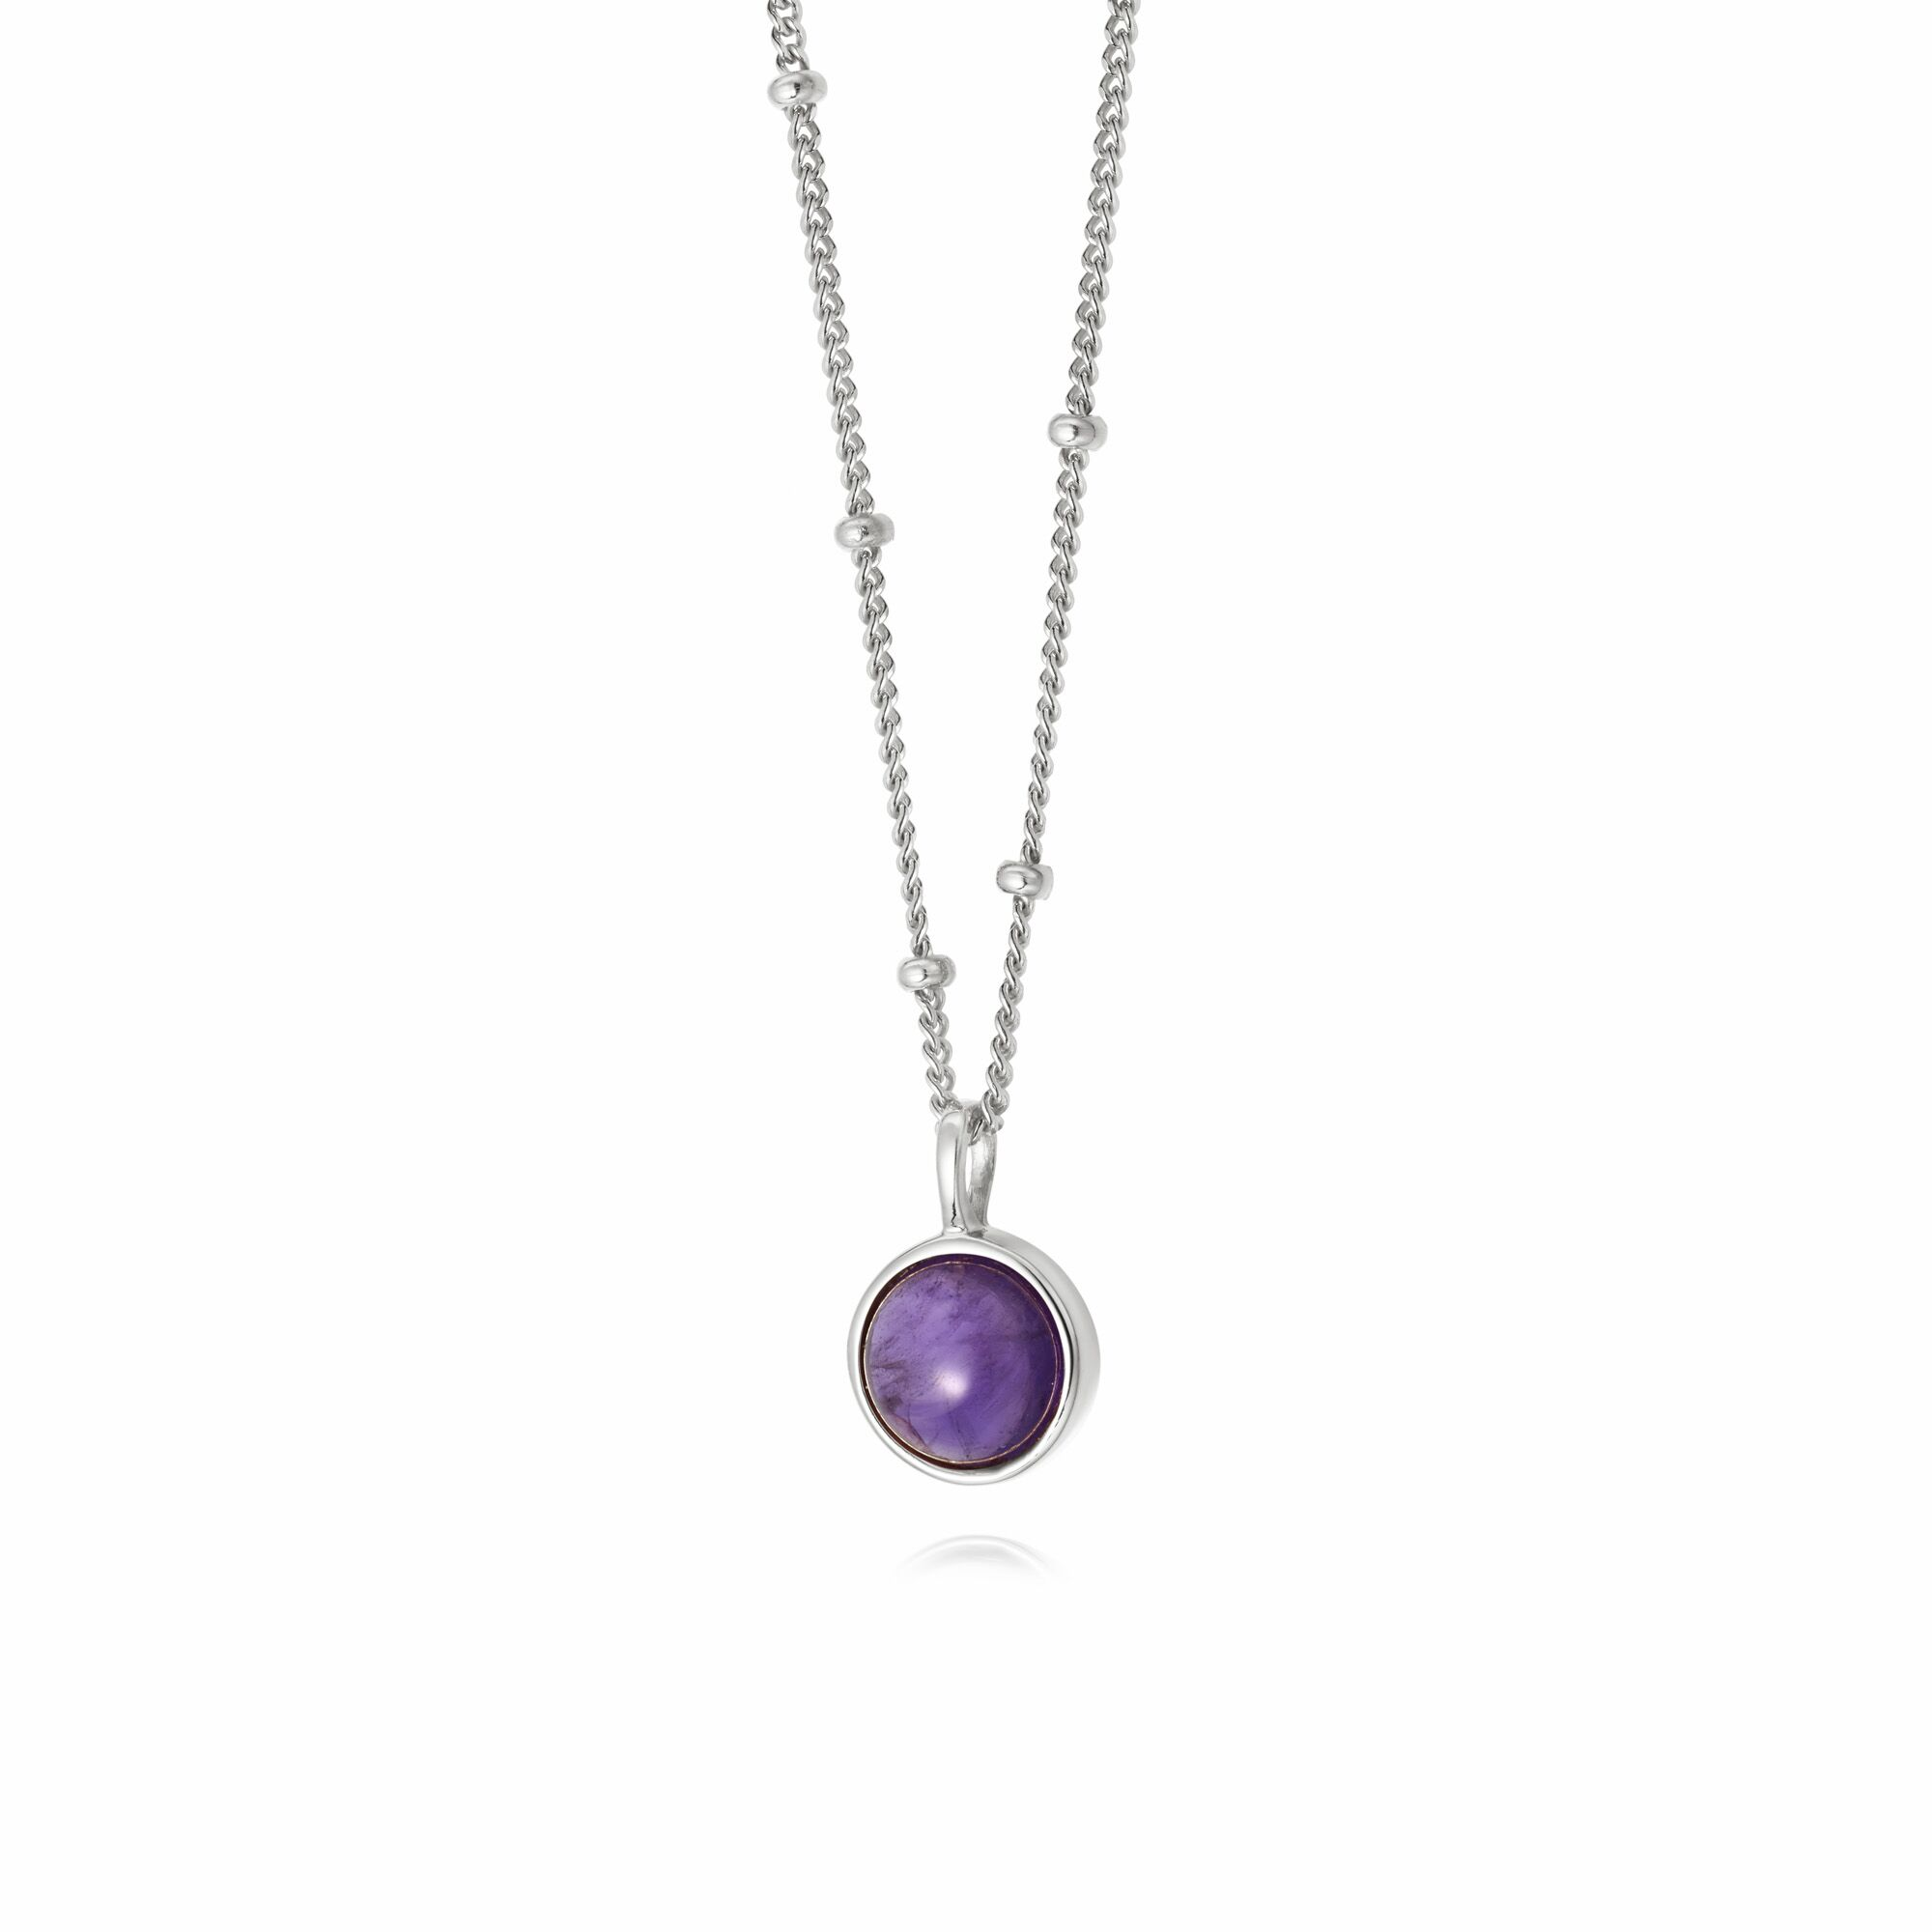 AMETHYST HEALING NECKLACE SILVER